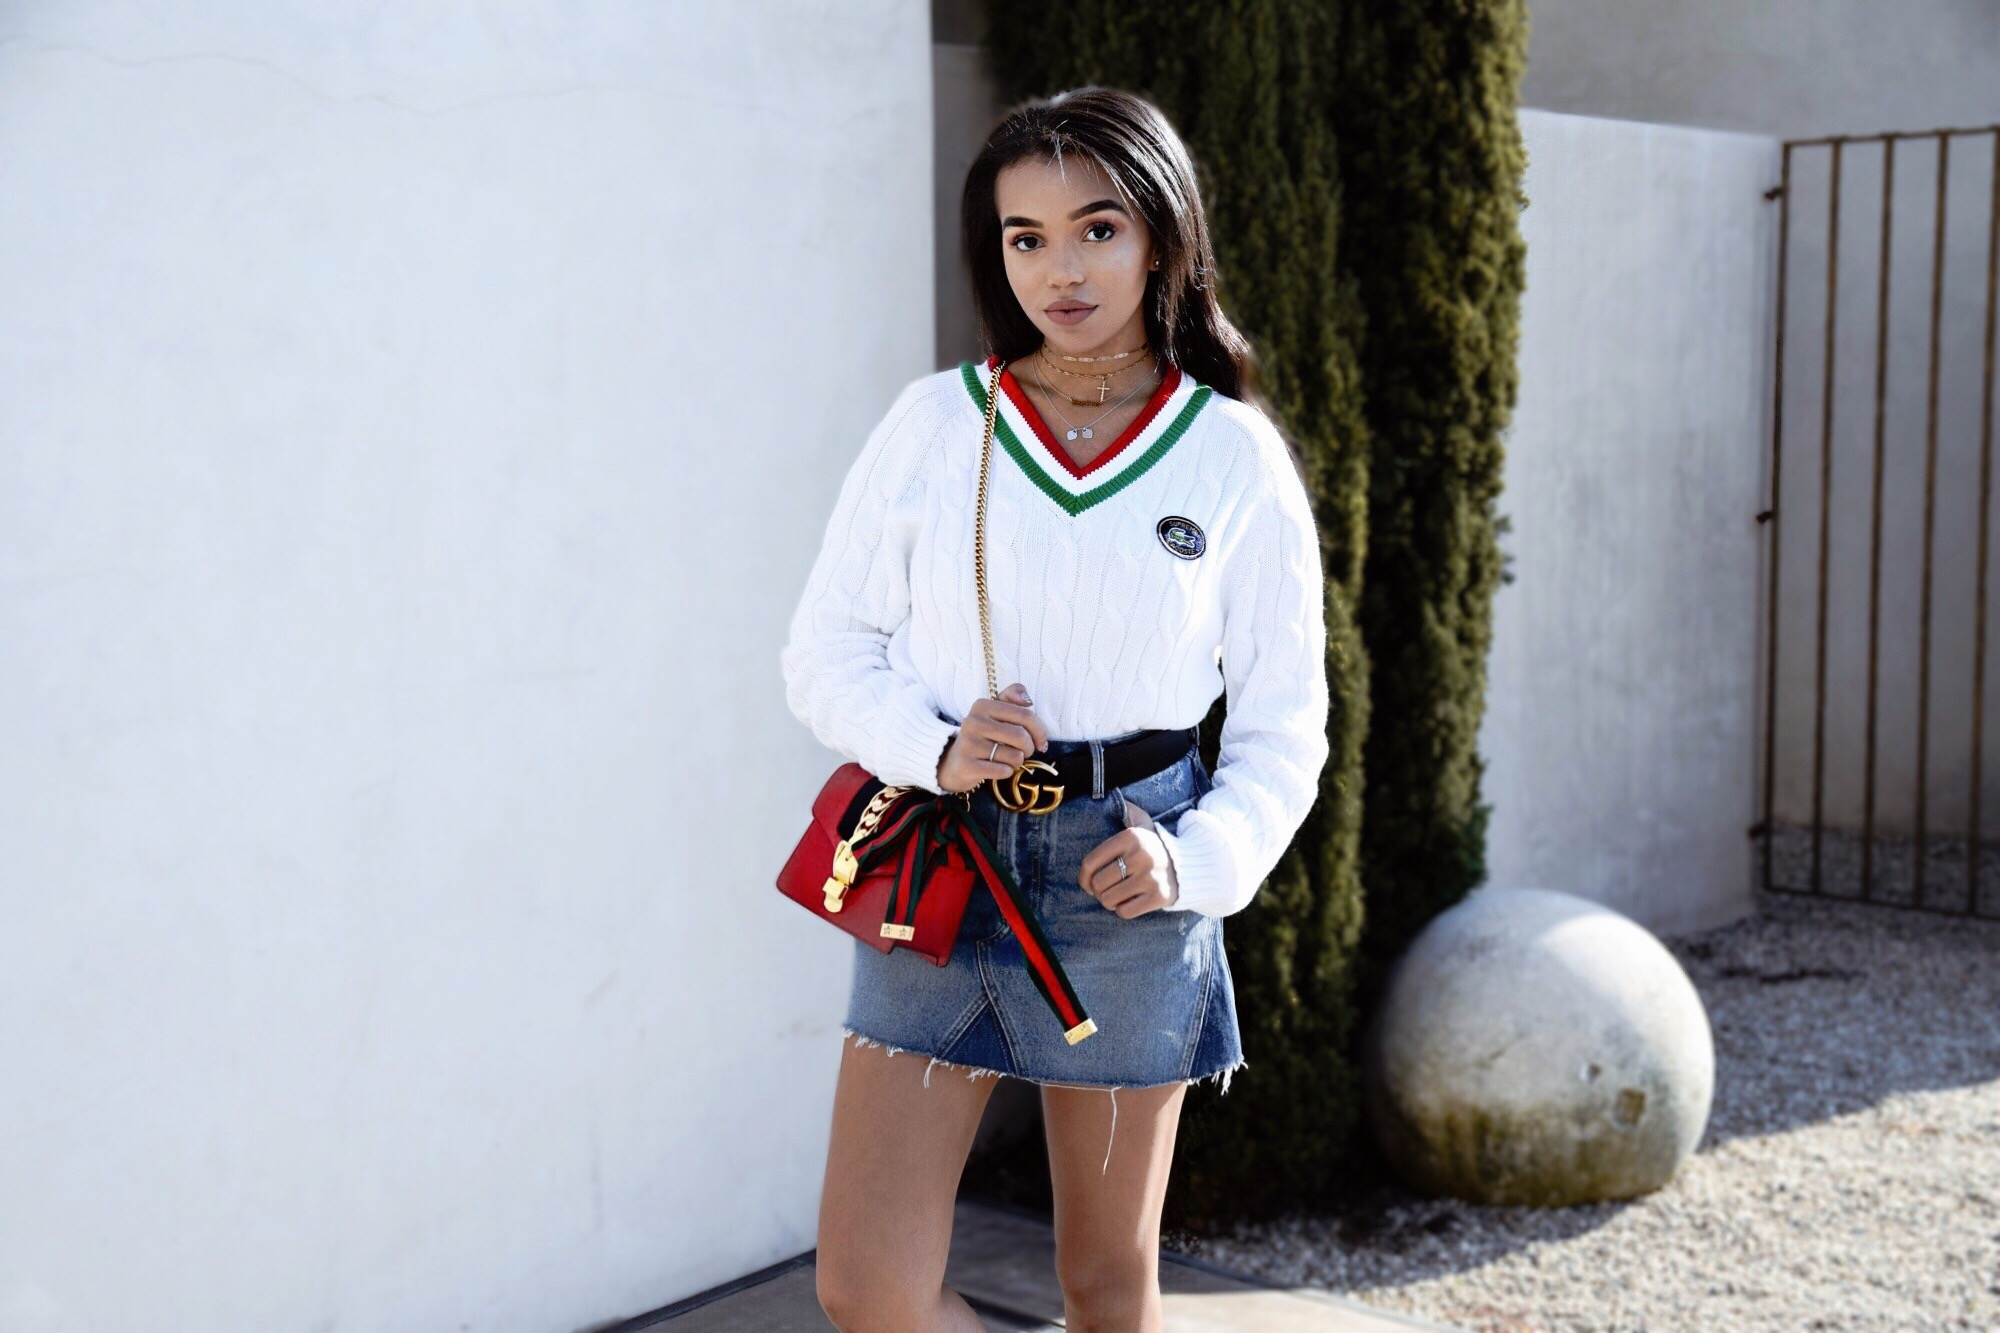 Supreme x Lacoste // Varsity Sweater Red and Green // GRLFRND Denim Mini Skirt // Gucci GG Marmont Belt // Gucci Spike Sneakers // Gucci Red Crossbody Bag // Los Angeles Fashion Blogger Daphne Blunt: To Style, With Love